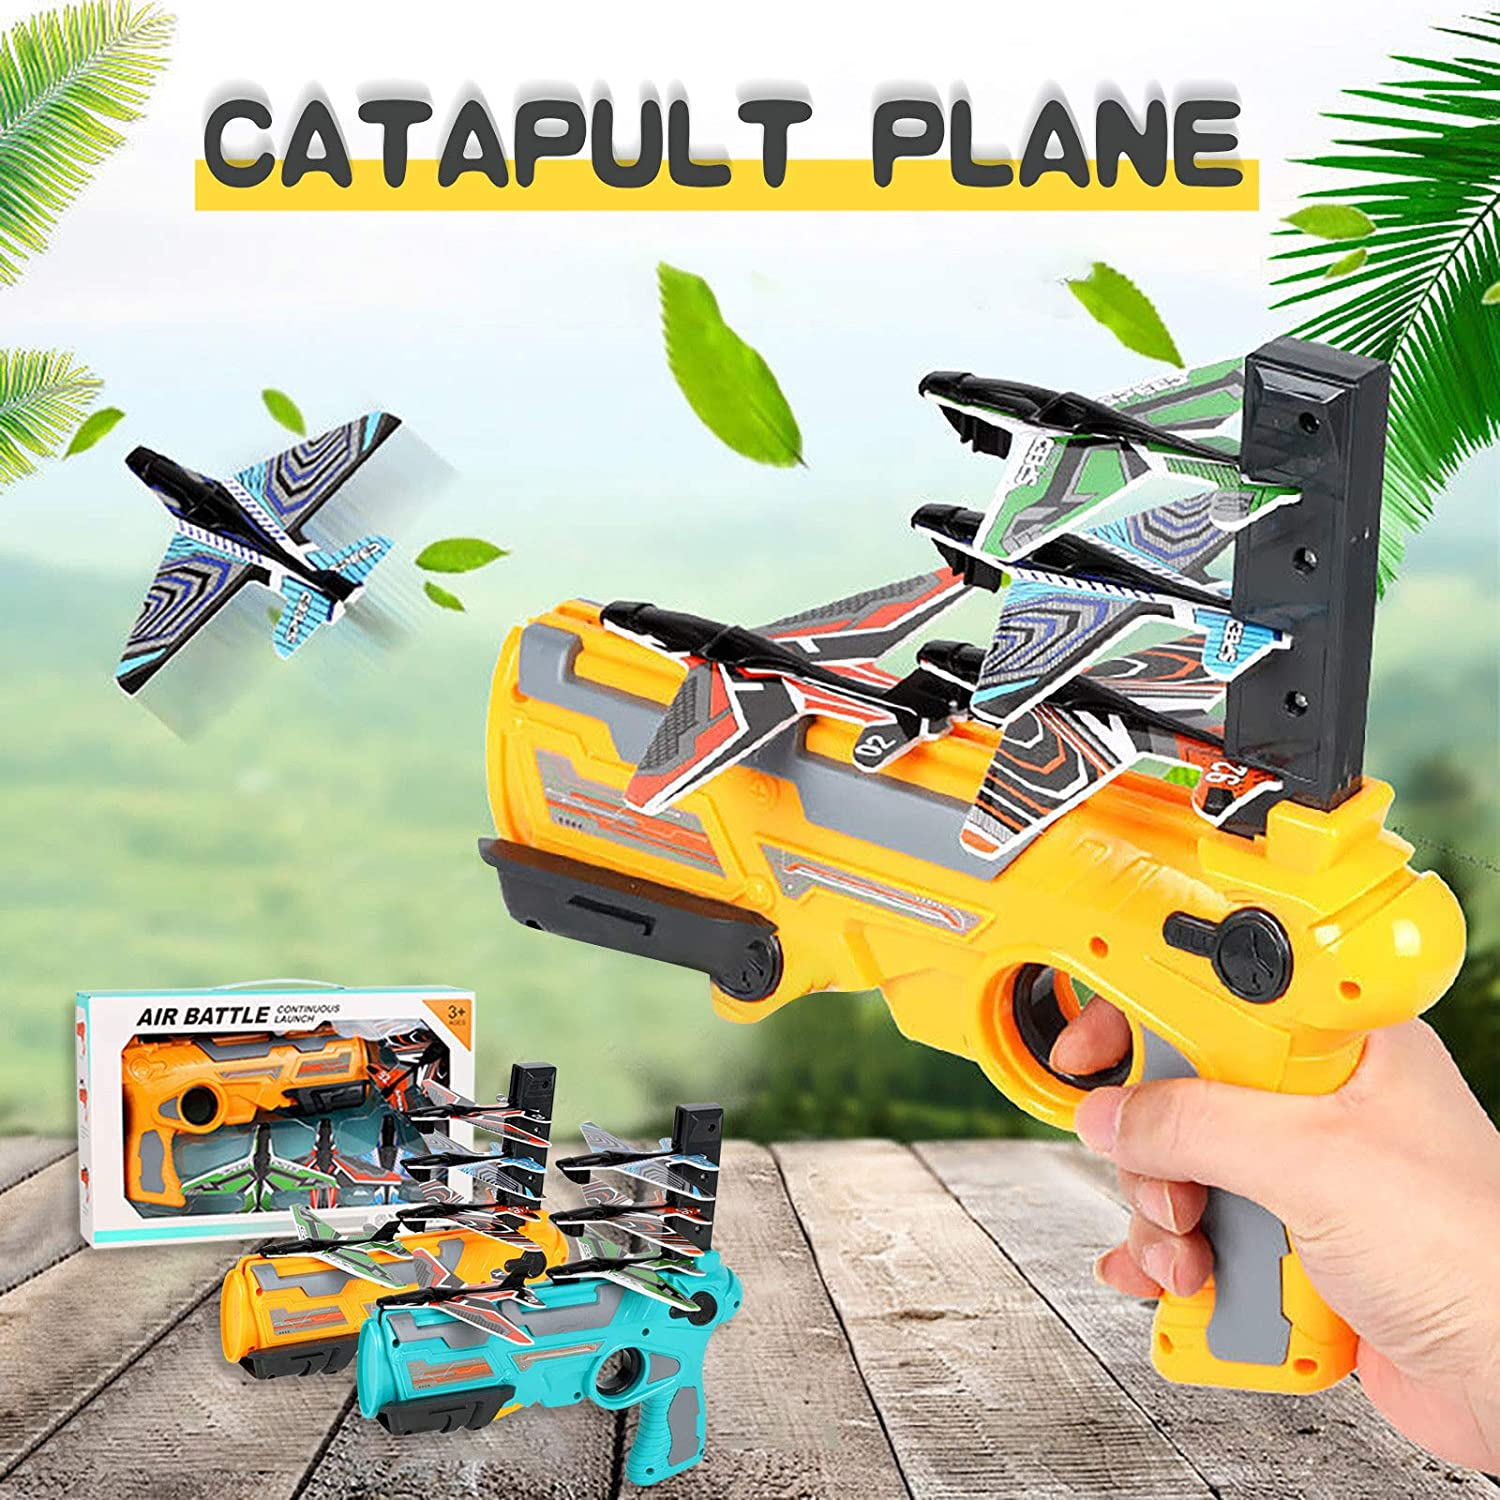 Bubble Catapult Plane Toy Airplane